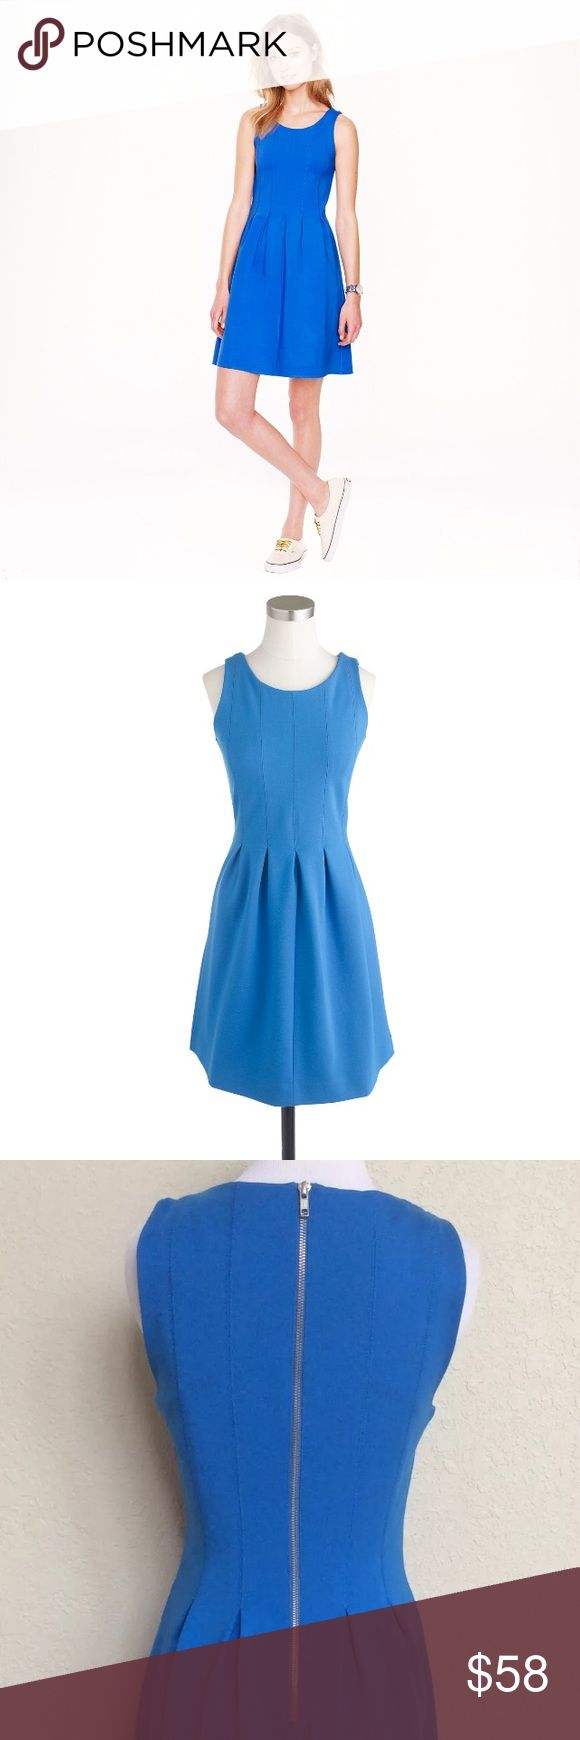 J. Crew Pleated Flare Dress in Electric Blue Tailored from a stretchy-but-structured electric blue fabric, this dress couldn't be easier or more comfortable to wear! A perfect blend of rayon, nylon, and a little spandex, this dress falls above the knee and is completed with a back gold zipper closure and bra keeps. Getting ready in the morning just got so much easier! J. Crew Dresses